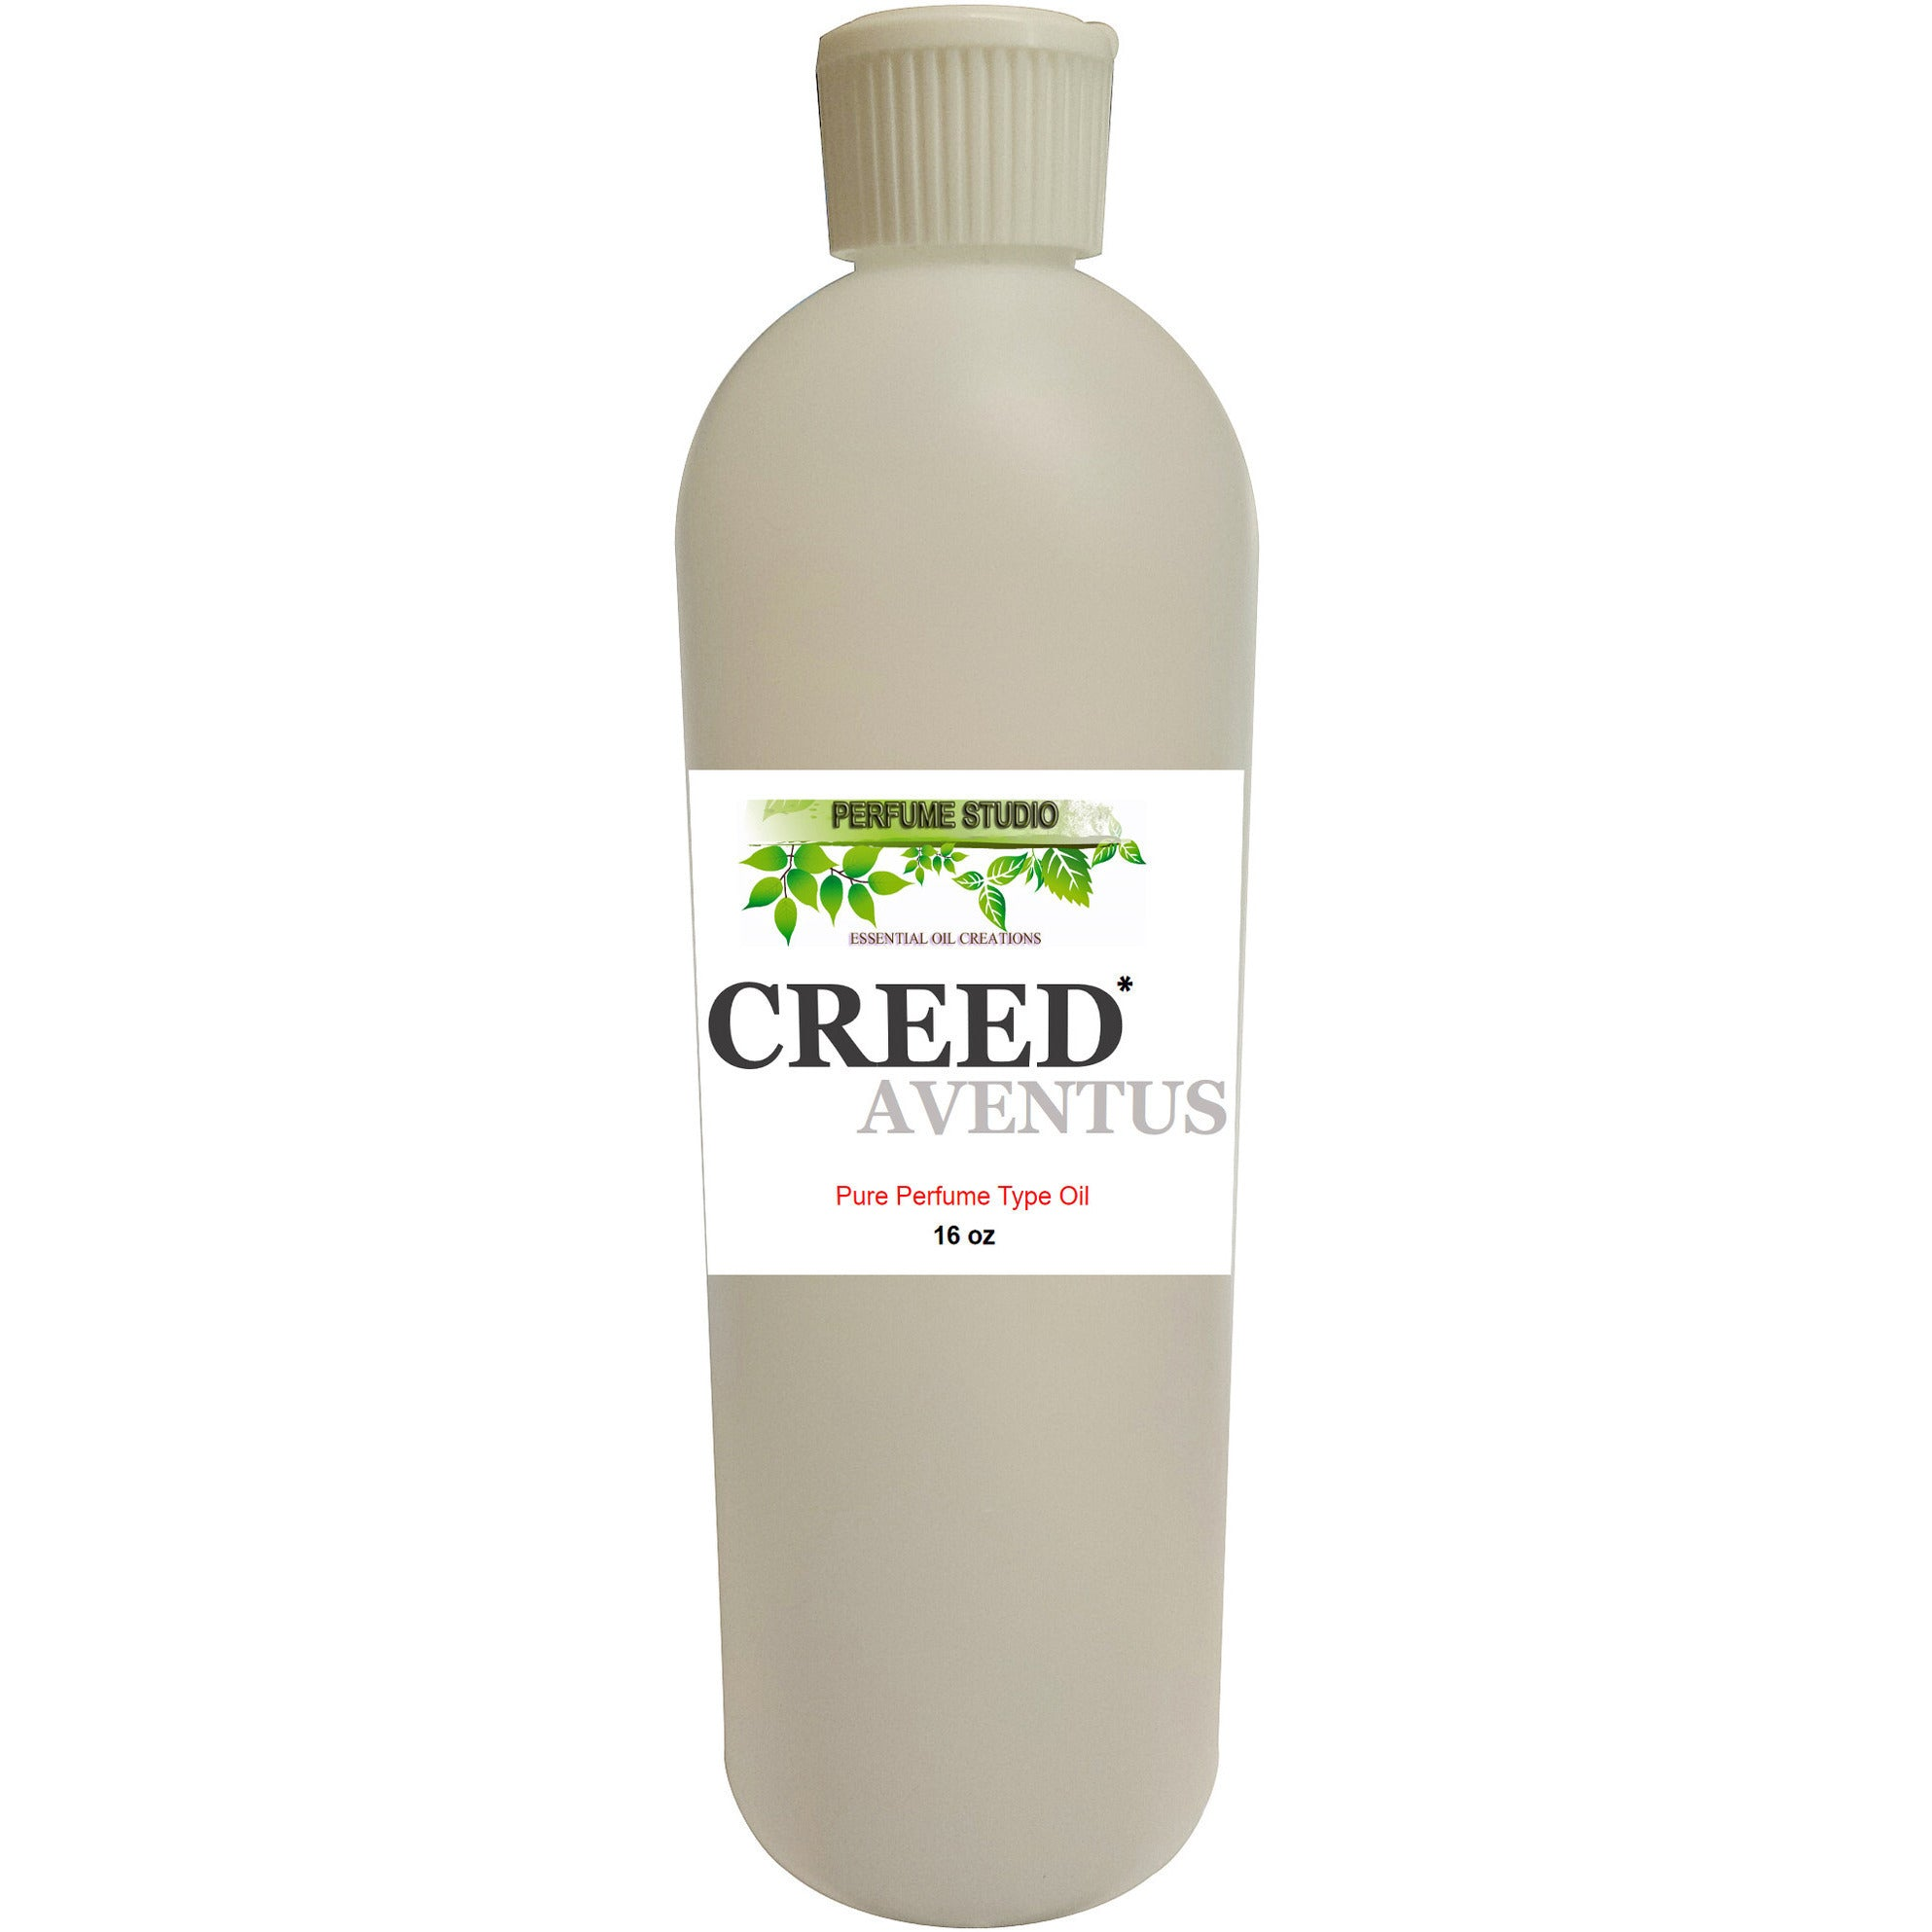 Wholesale Perfume Oil Inspired By Creed Aventus Cologne In A 16 Oz